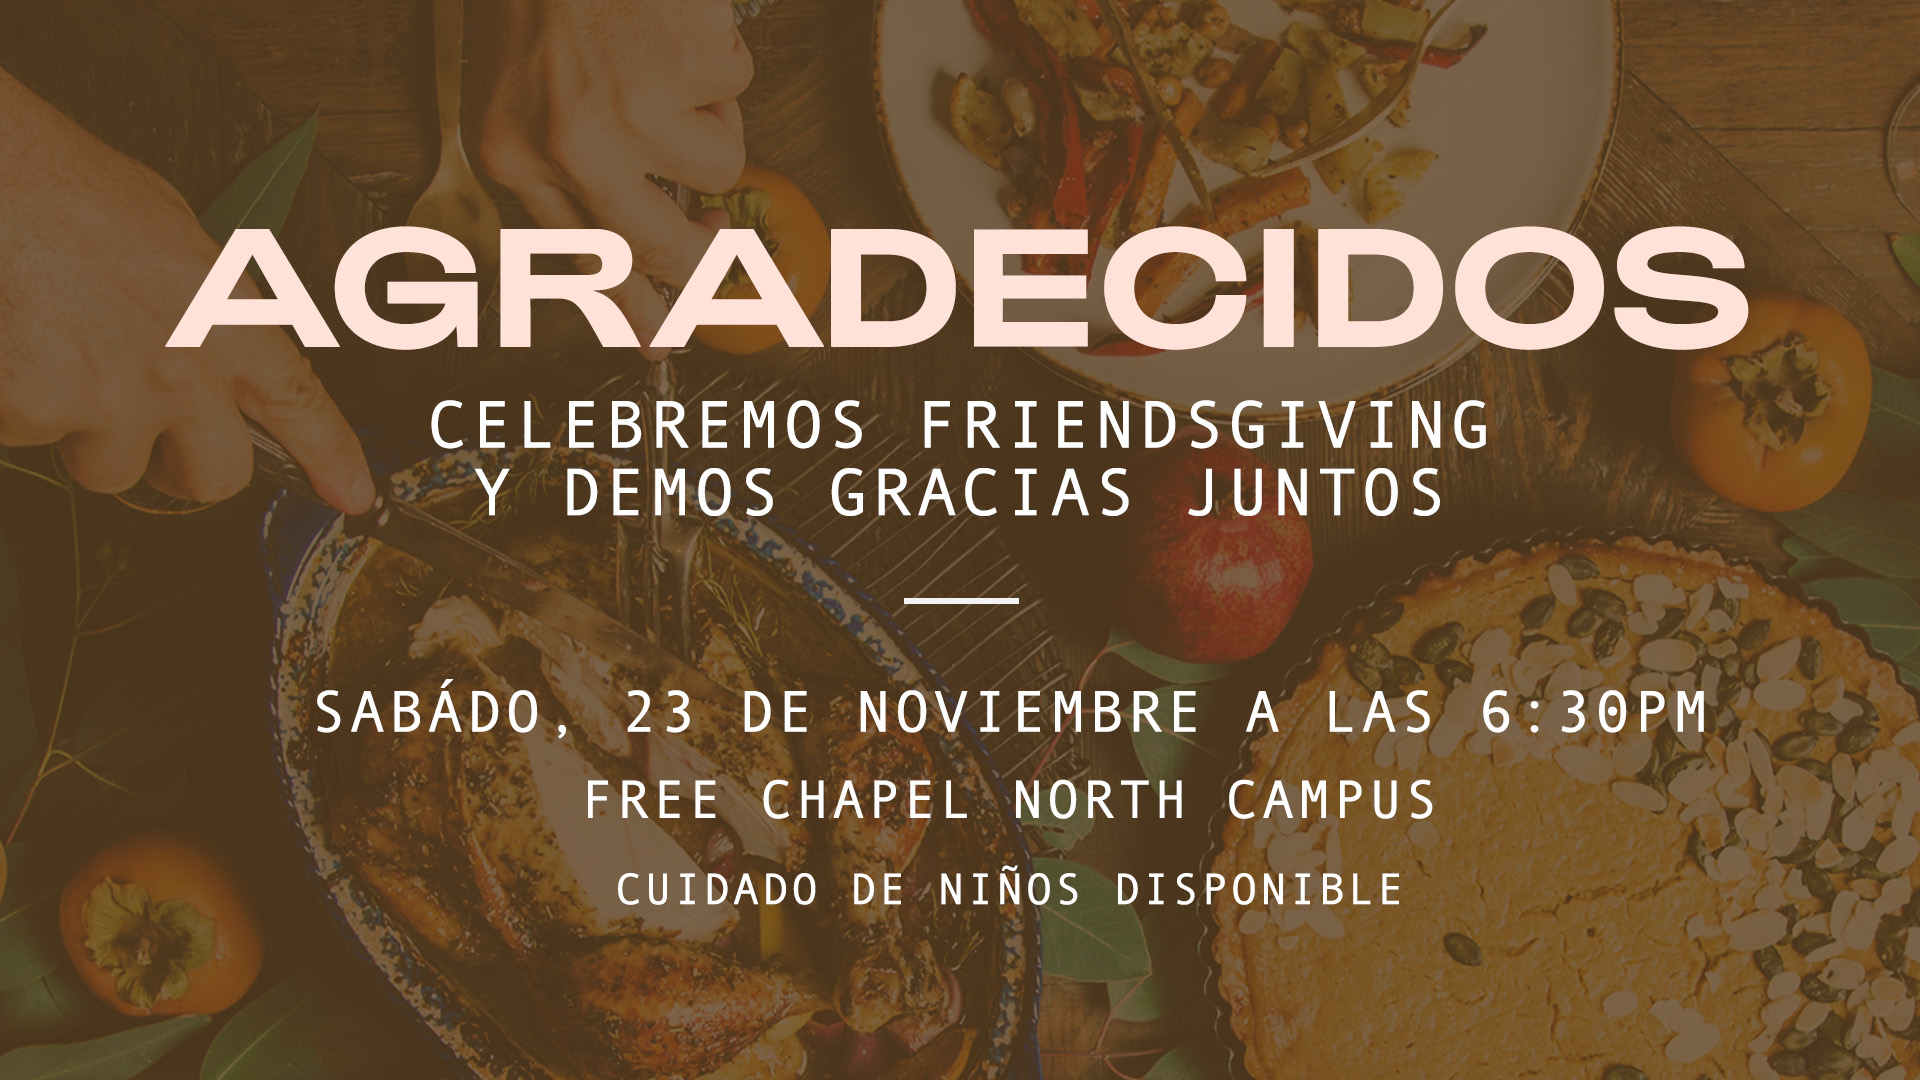 Agradecidos at the Gainesville campus